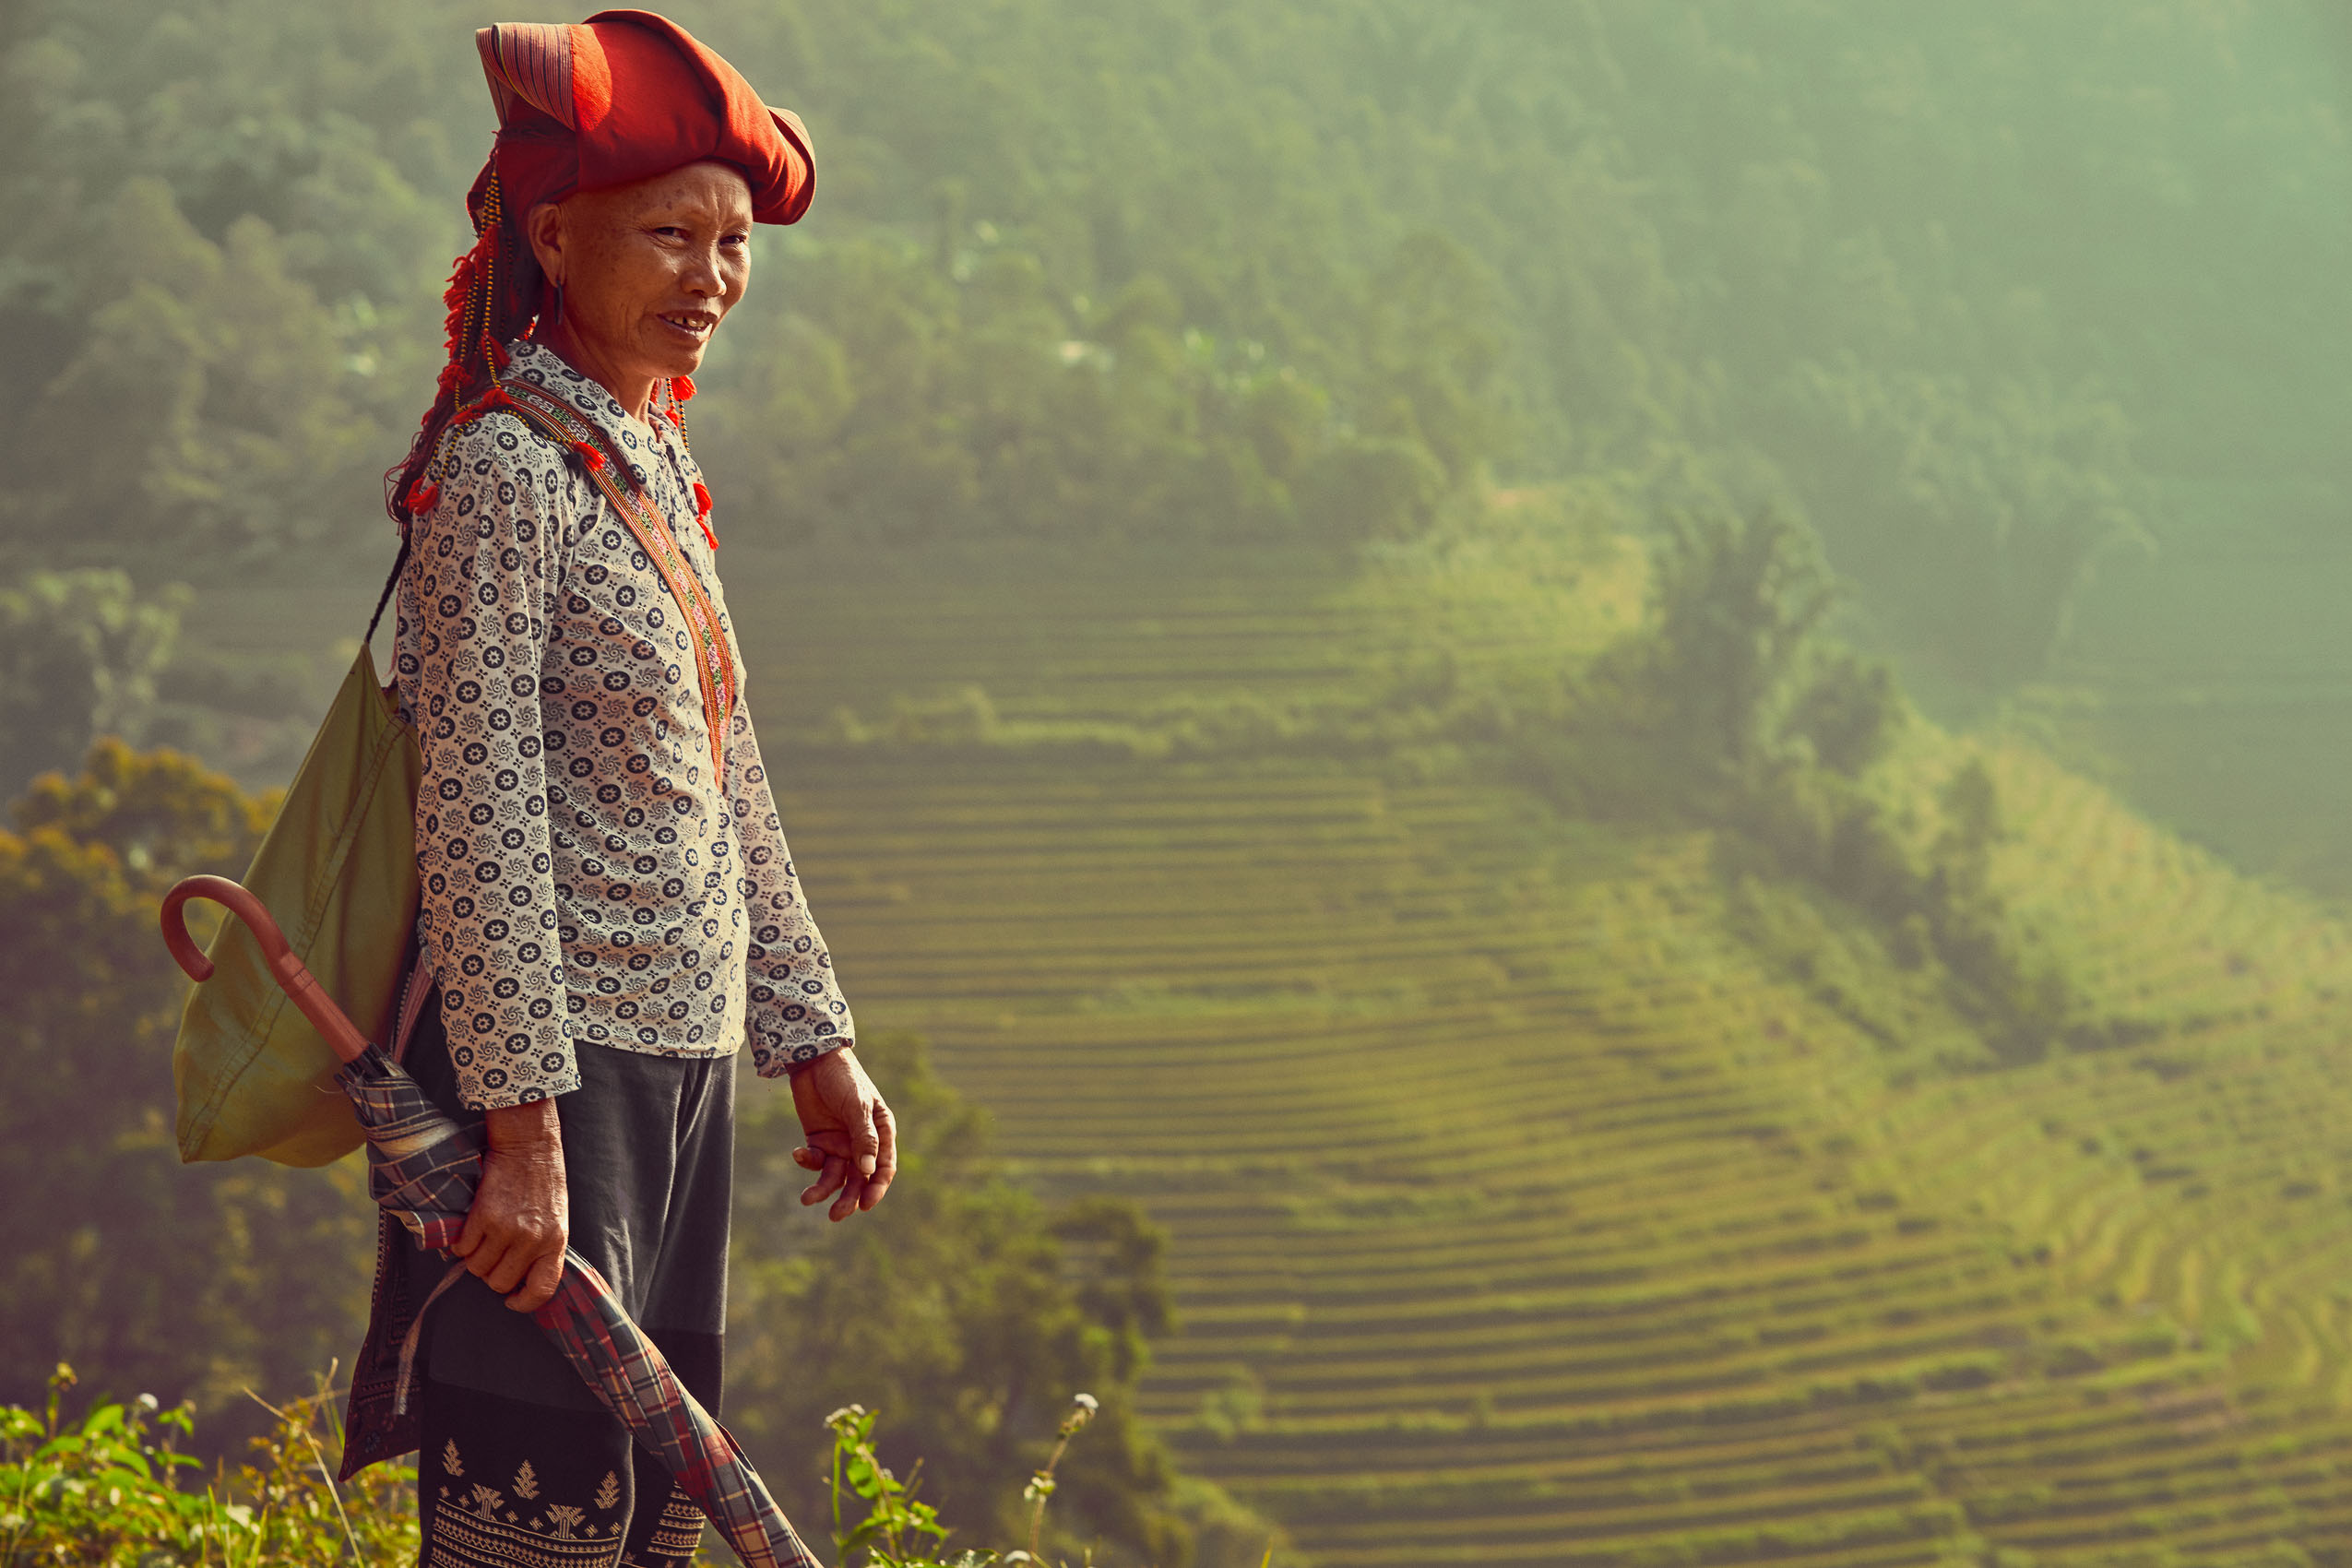 HIKING WITH RED DAO - SAPA VALLEY